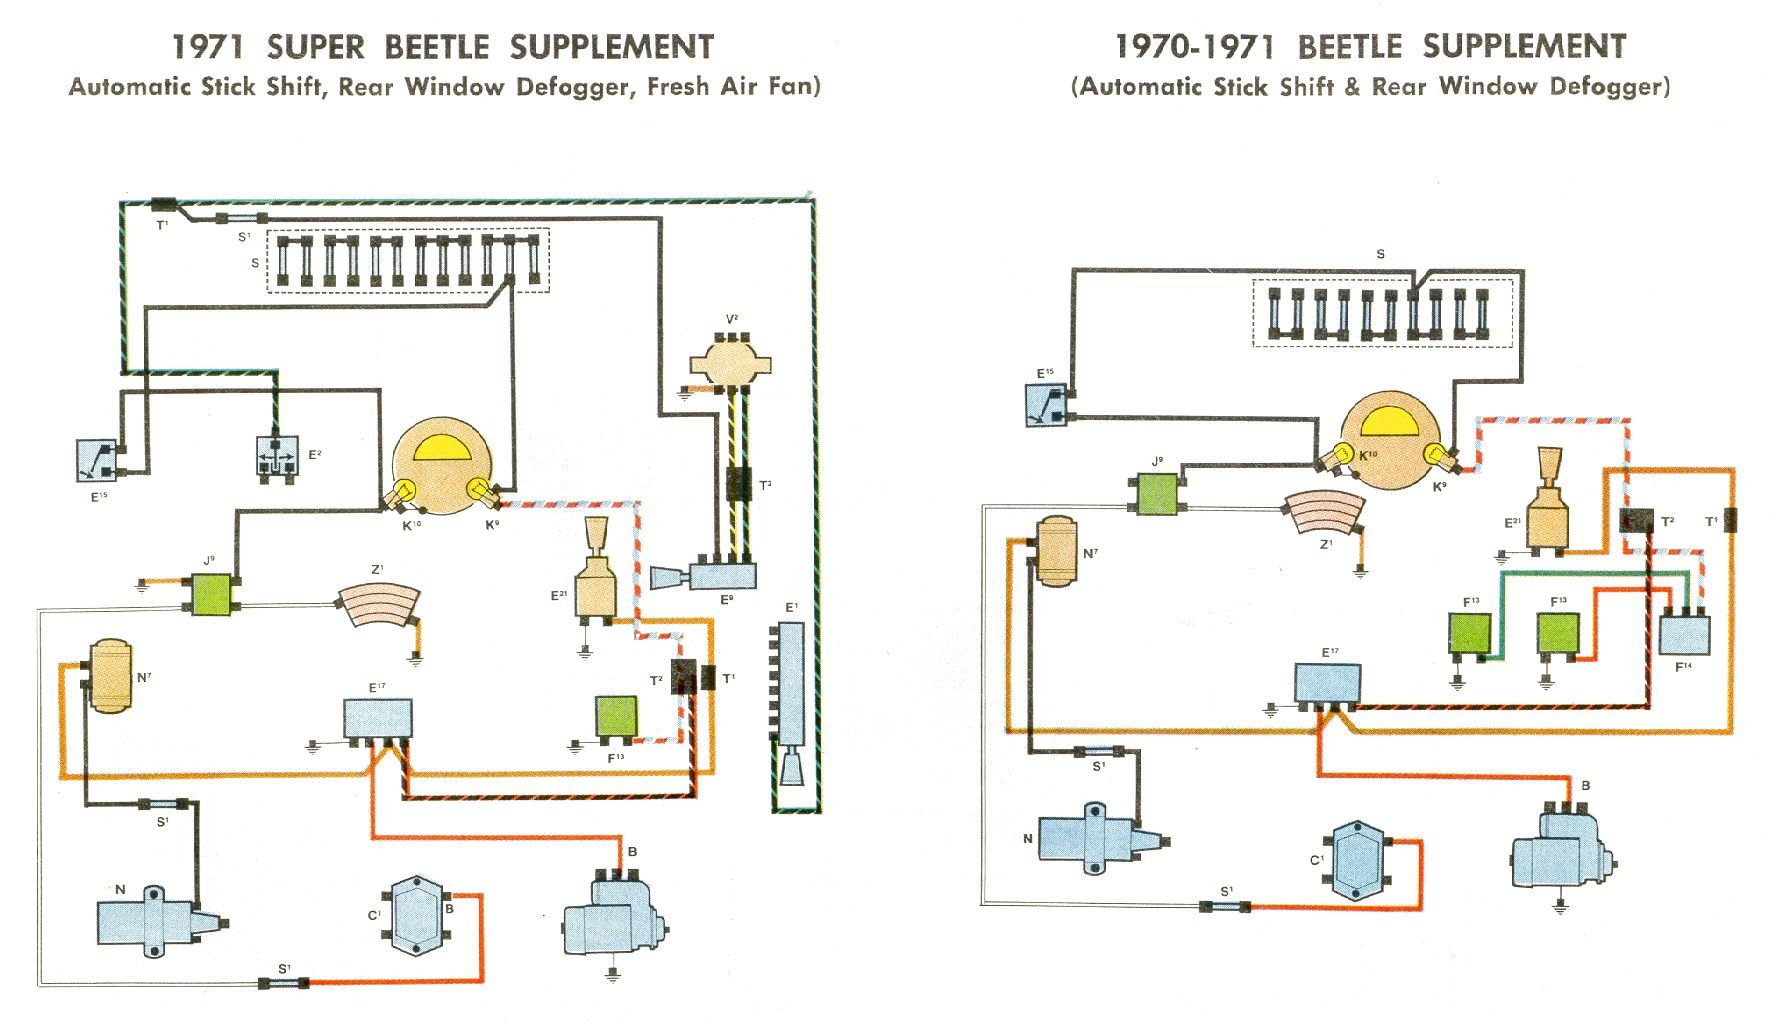 bug_7071_supplement 1969 71 beetle wiring diagram thegoldenbug com 1974 super beetle fuse diagram at crackthecode.co